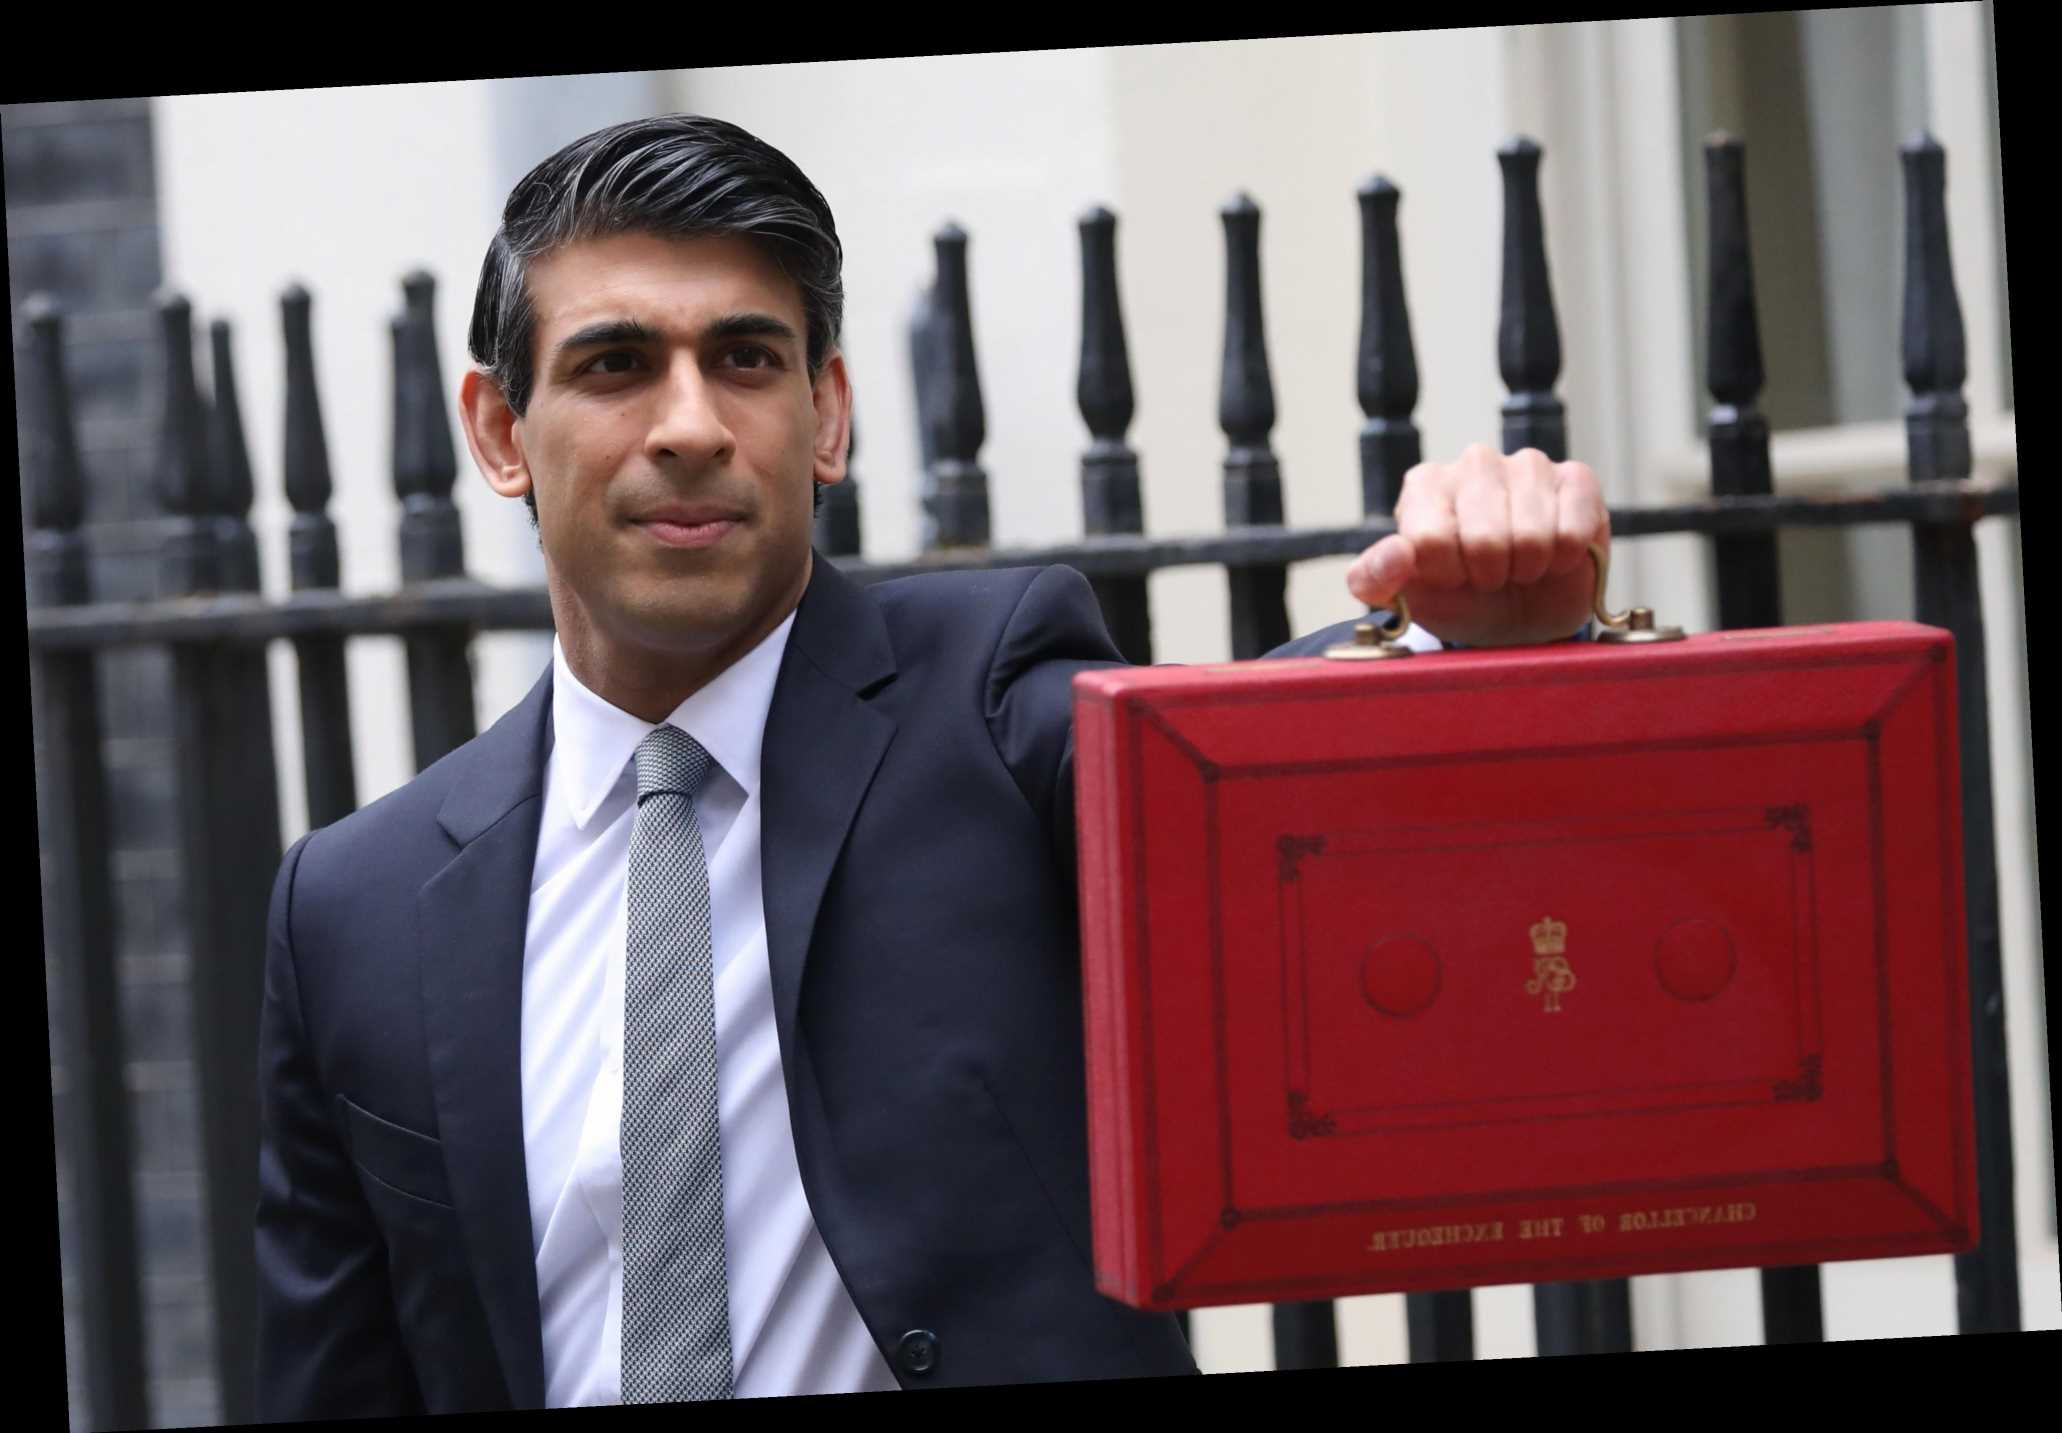 Budget: Rishi Sunak admits Covid has hit Britain hard but he's 'optimistic' about UK's recovery